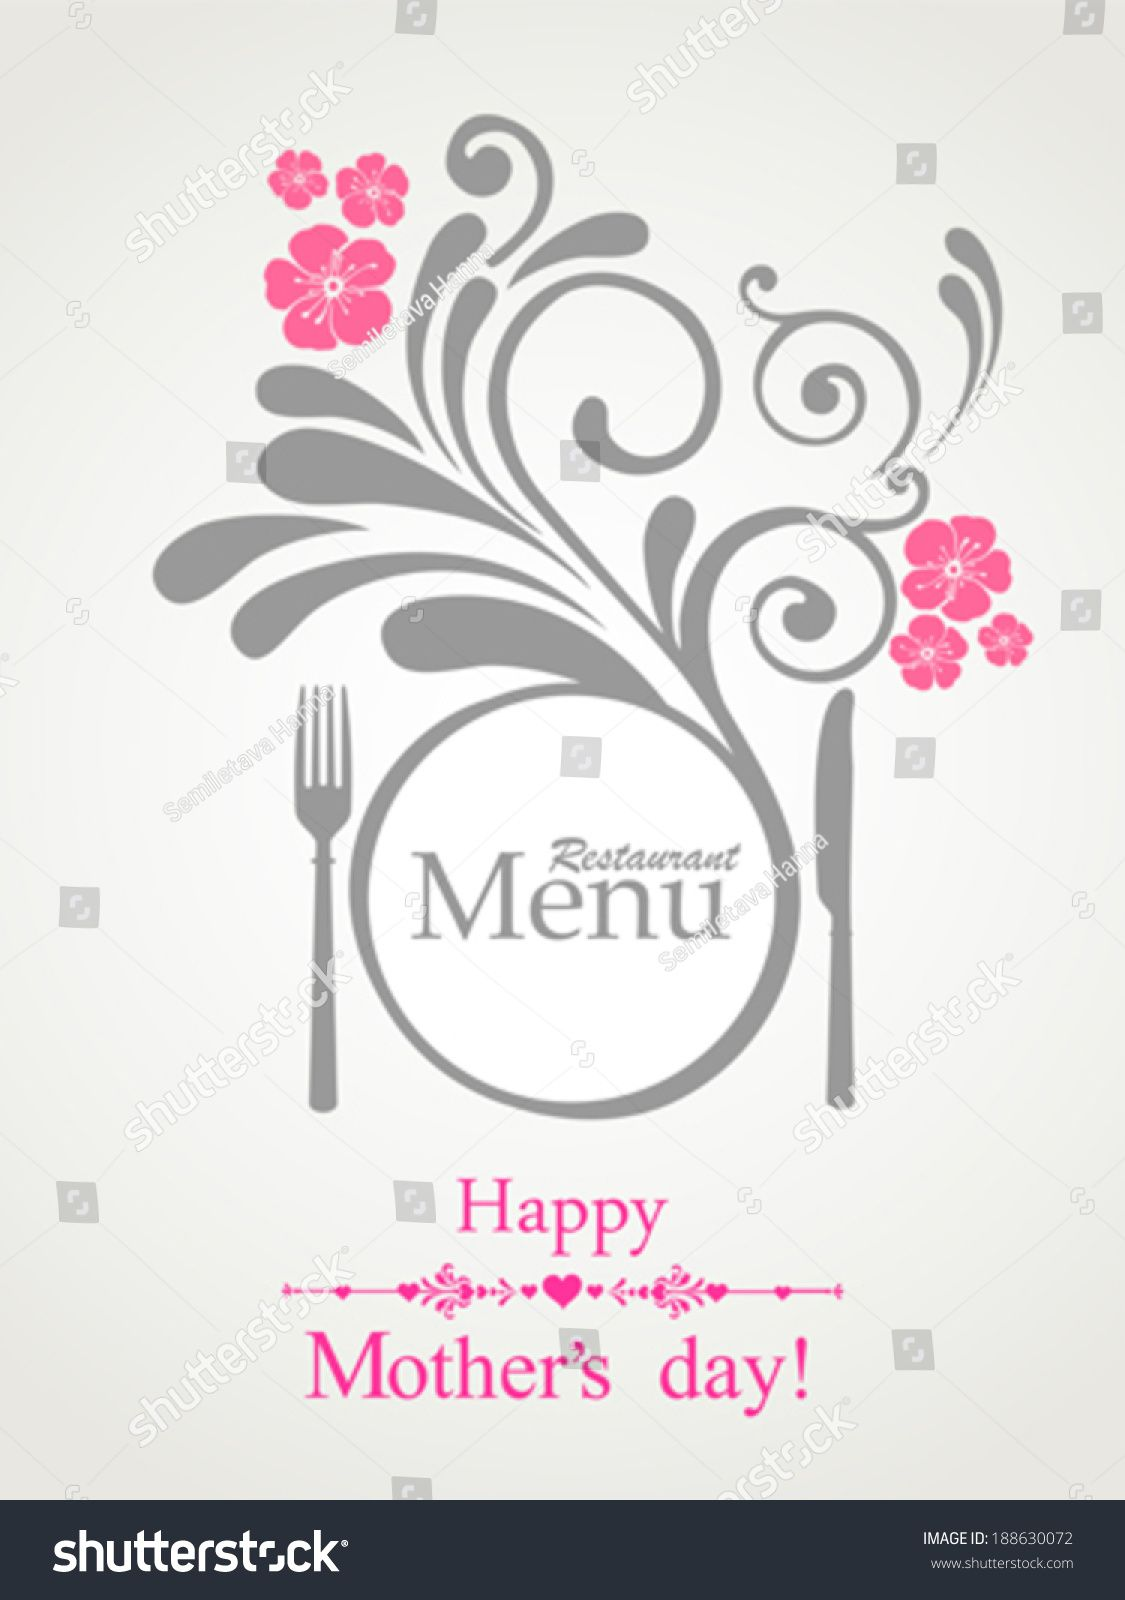 happy mother's day! restaurant menu card design. menu template on